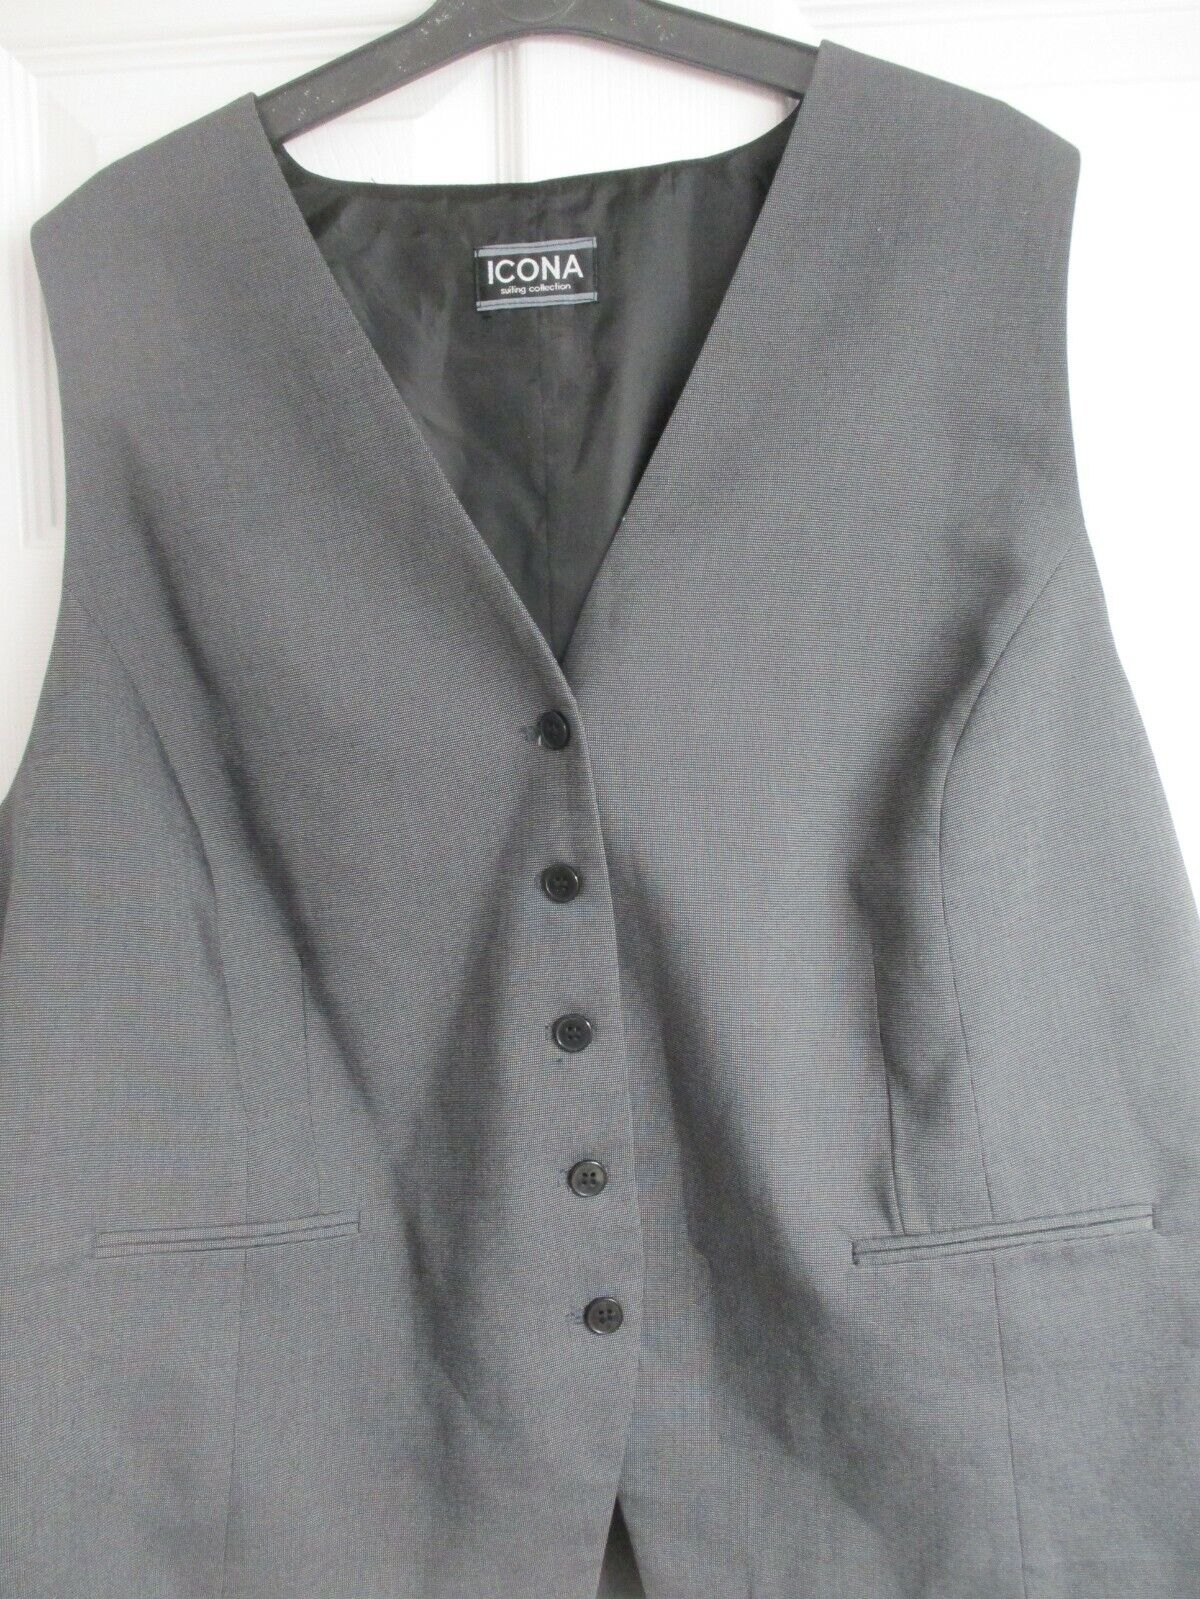 NEW with tags Mens Waistcoat with Teflon Fabric Protector Gents Euro Size 52